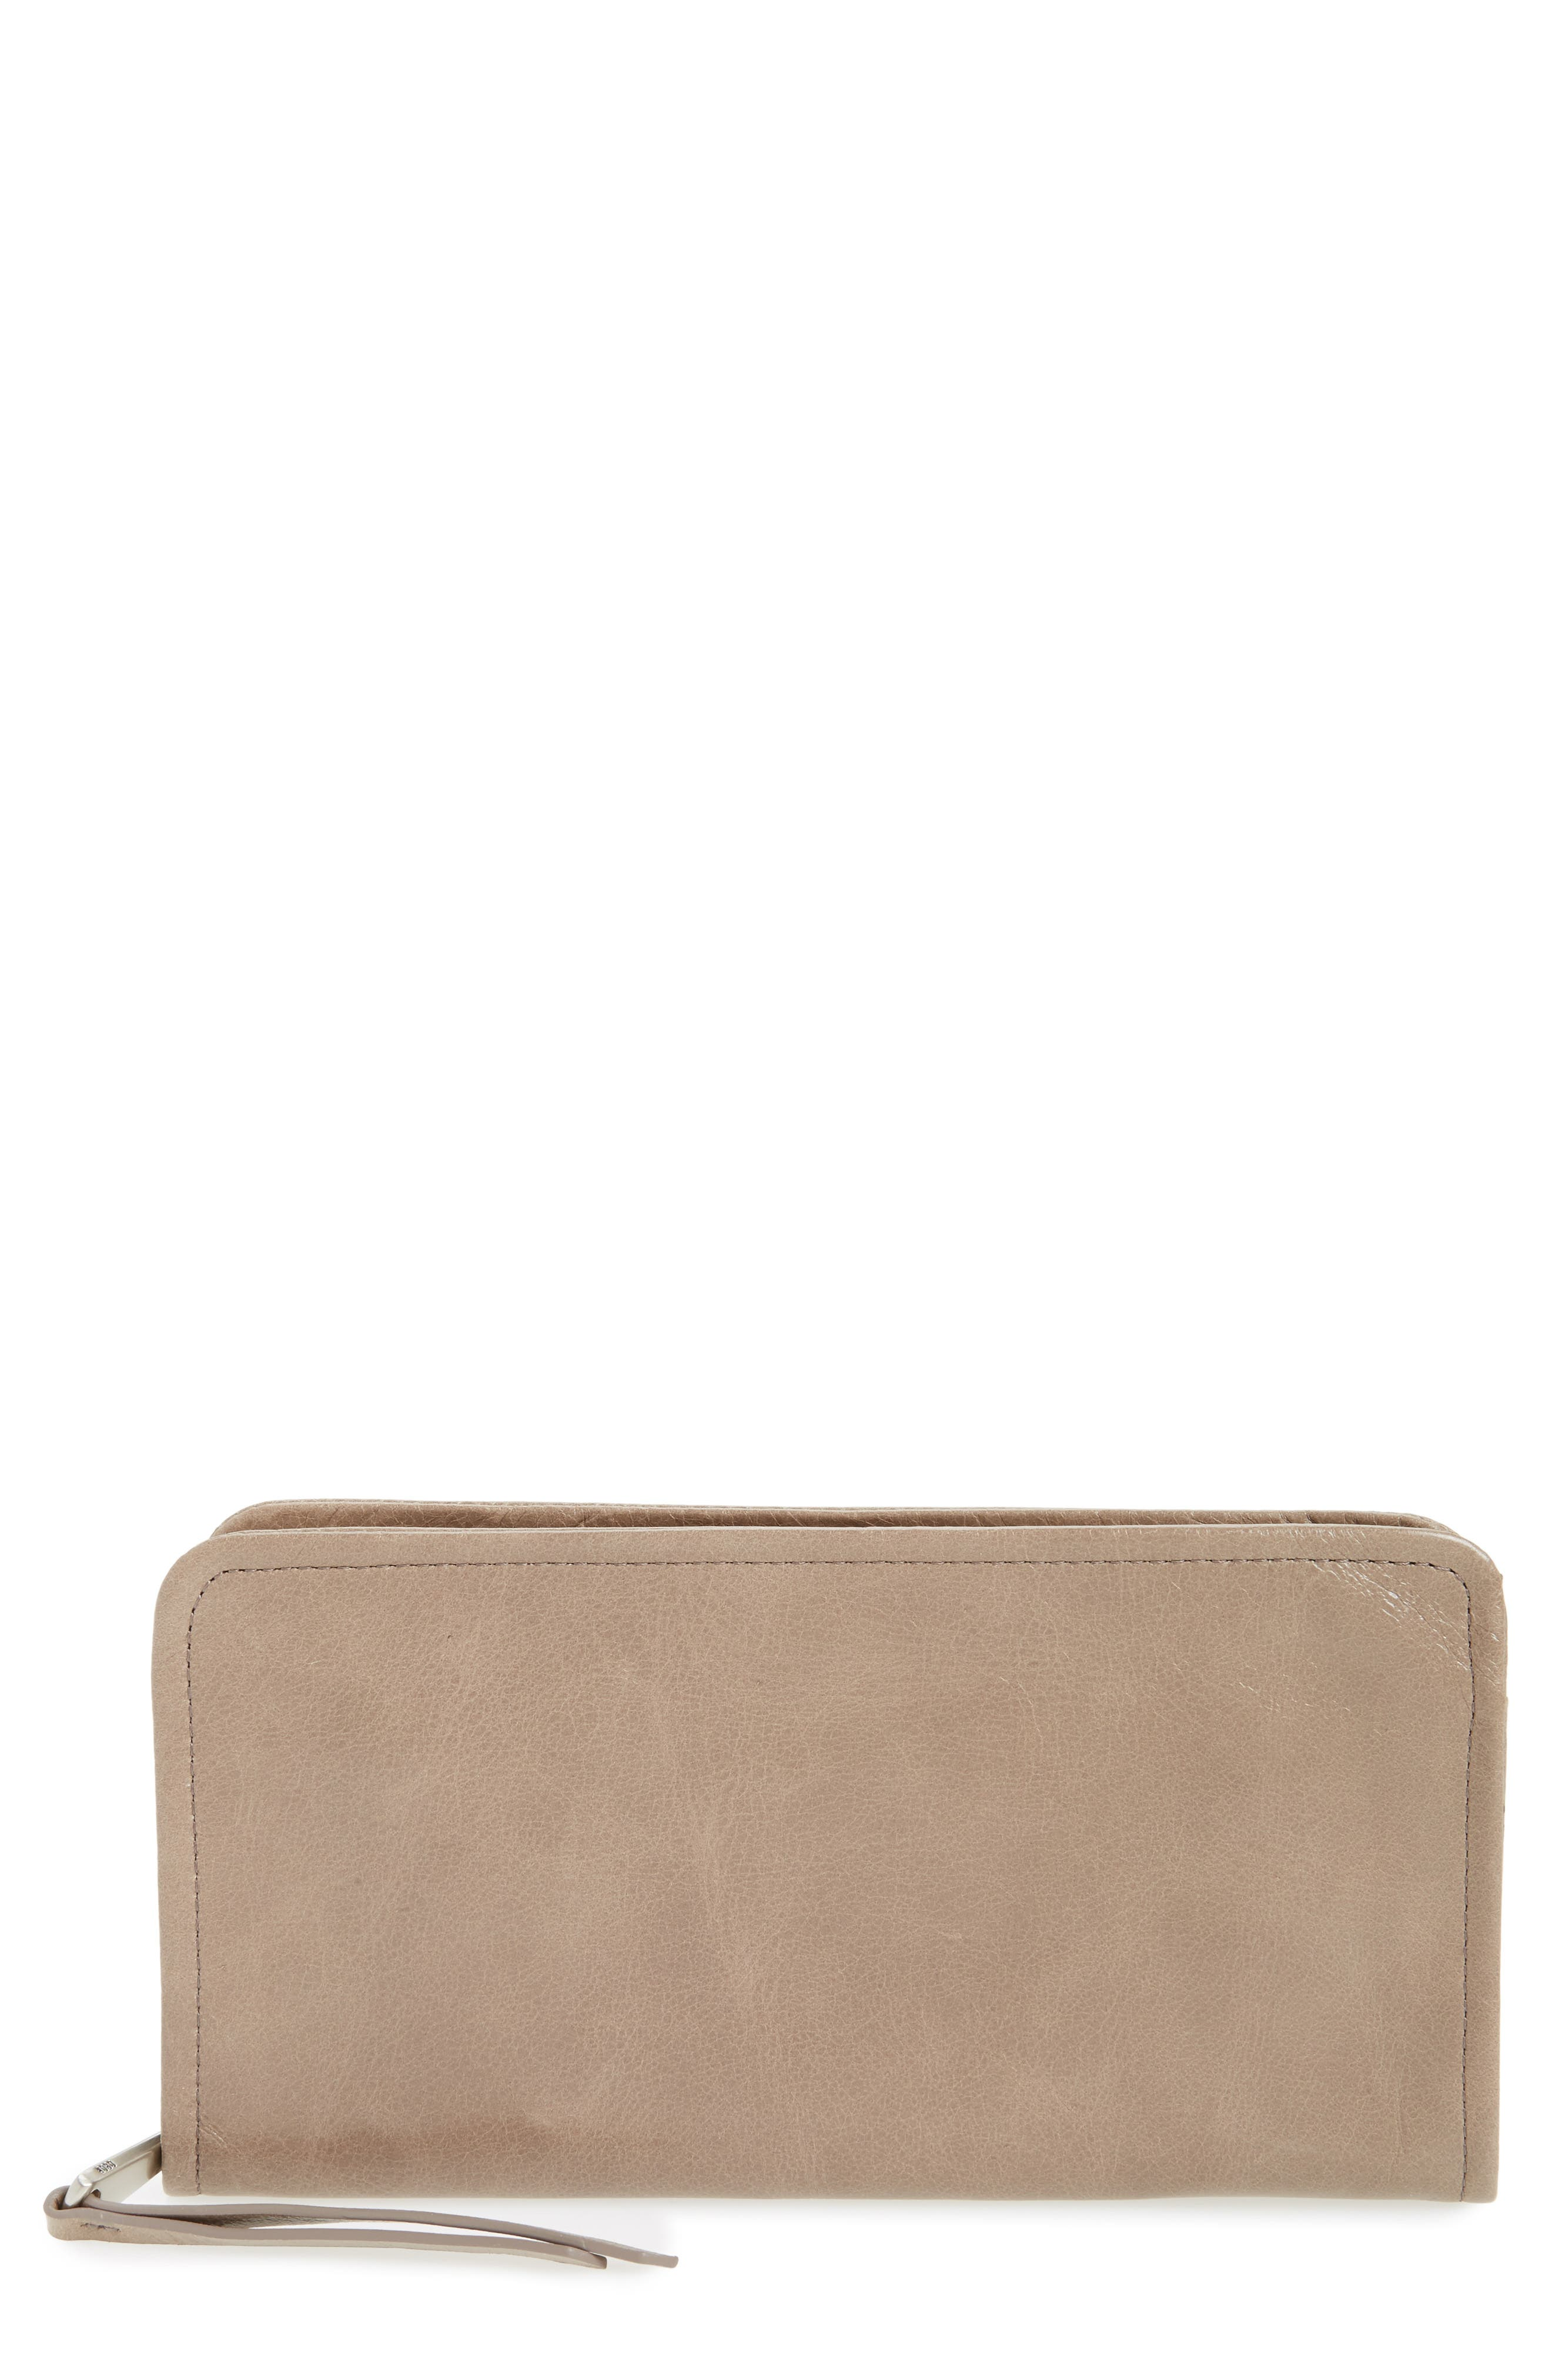 Hobo Remi Calfskin Leather Zip-Around Wallet